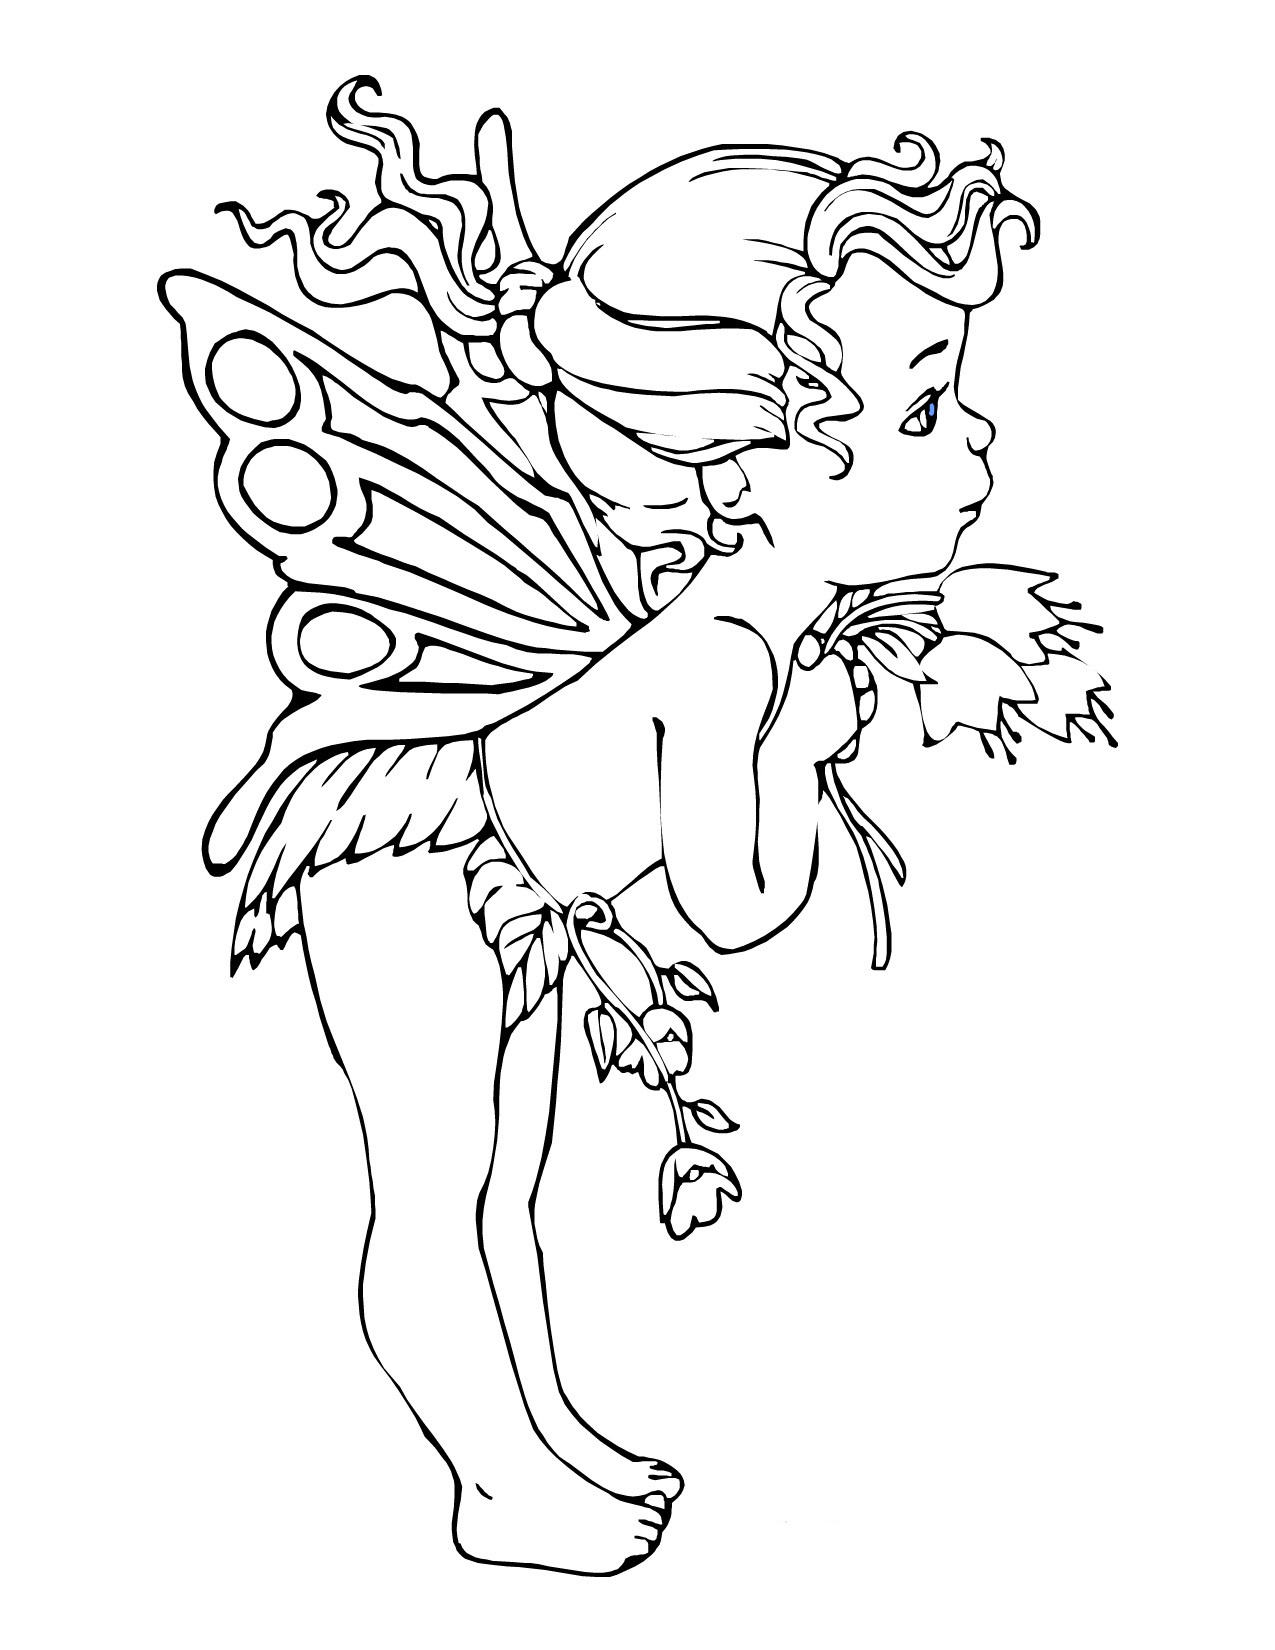 image relating to Printable Fairies Coloring Pages named Cost-free Printable Fairy Coloring Internet pages For Little ones